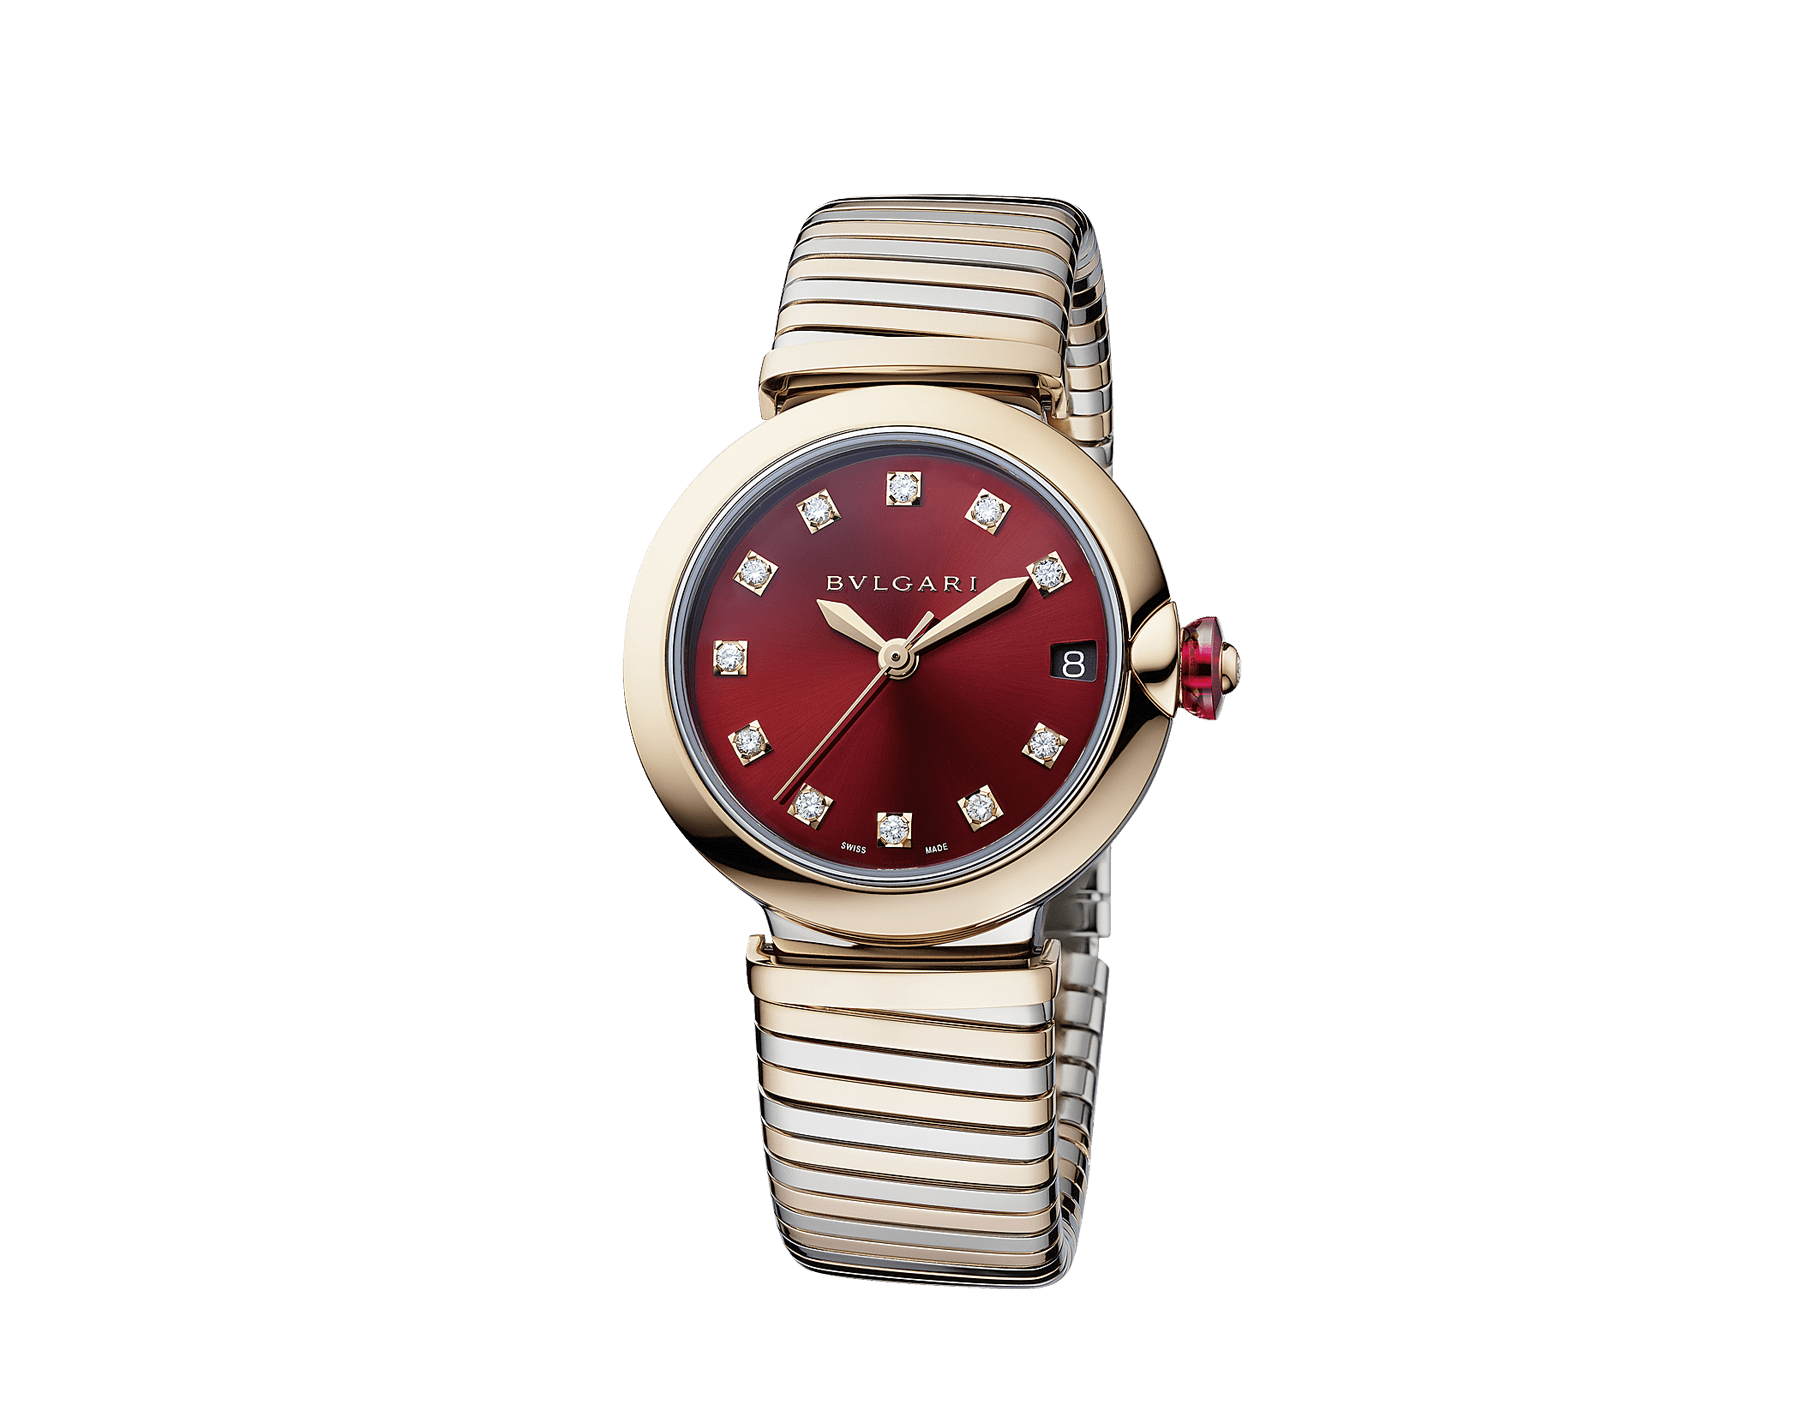 LVCEA watch with stainless steel case, 18 kt rose gold bezel, red lacquered dial, diamond indexes and tubogas bracelet in 18 kt rose gold and stainless steel 103123 image 2